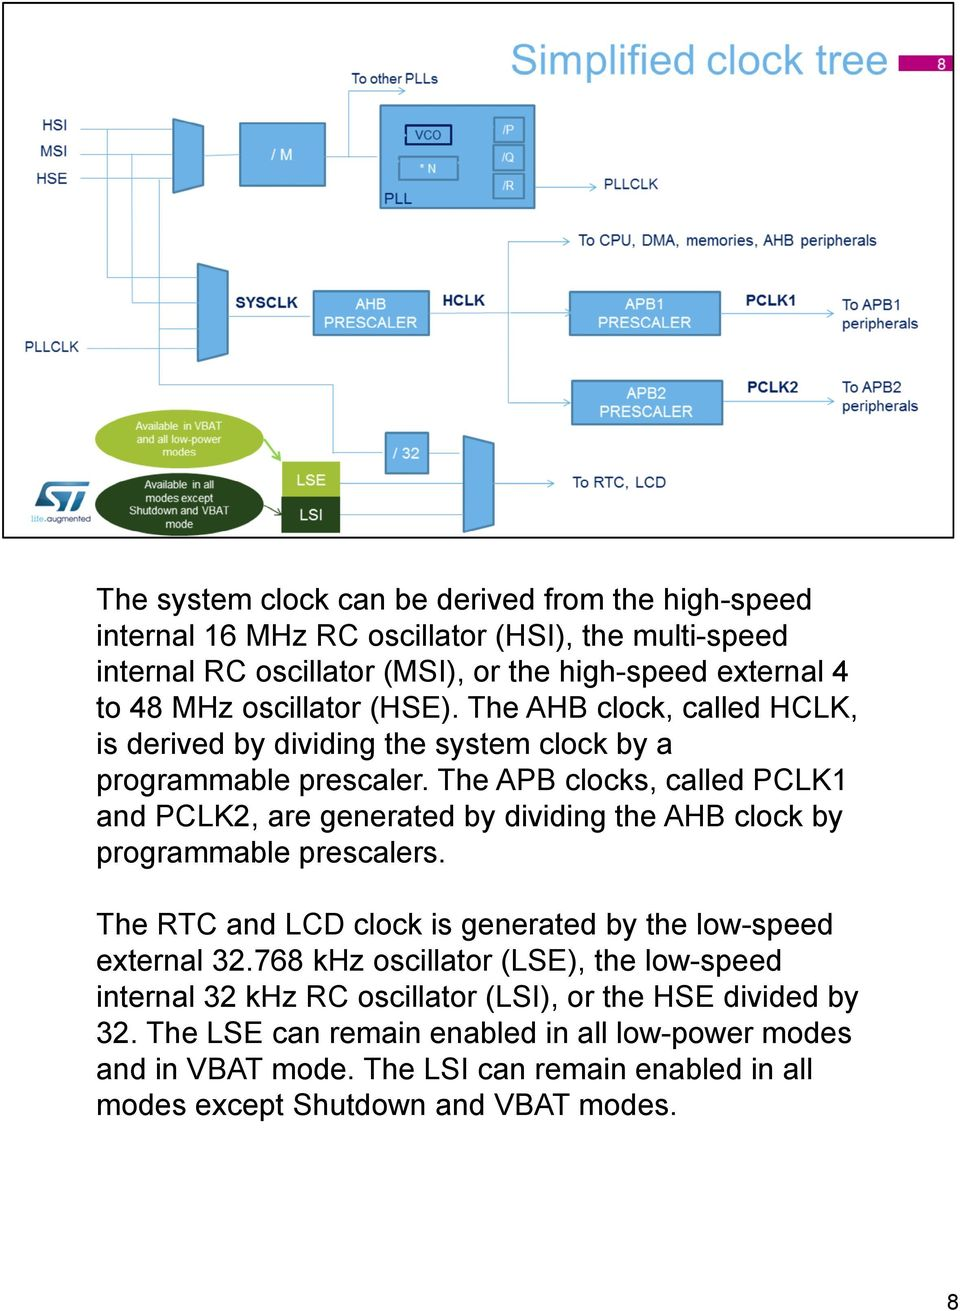 The APB clocks, called PCLK1 and PCLK2, are generated by dividing the AHB clock by programmable prescalers. The RTC and LCD clock is generated by the low-speed external 32.